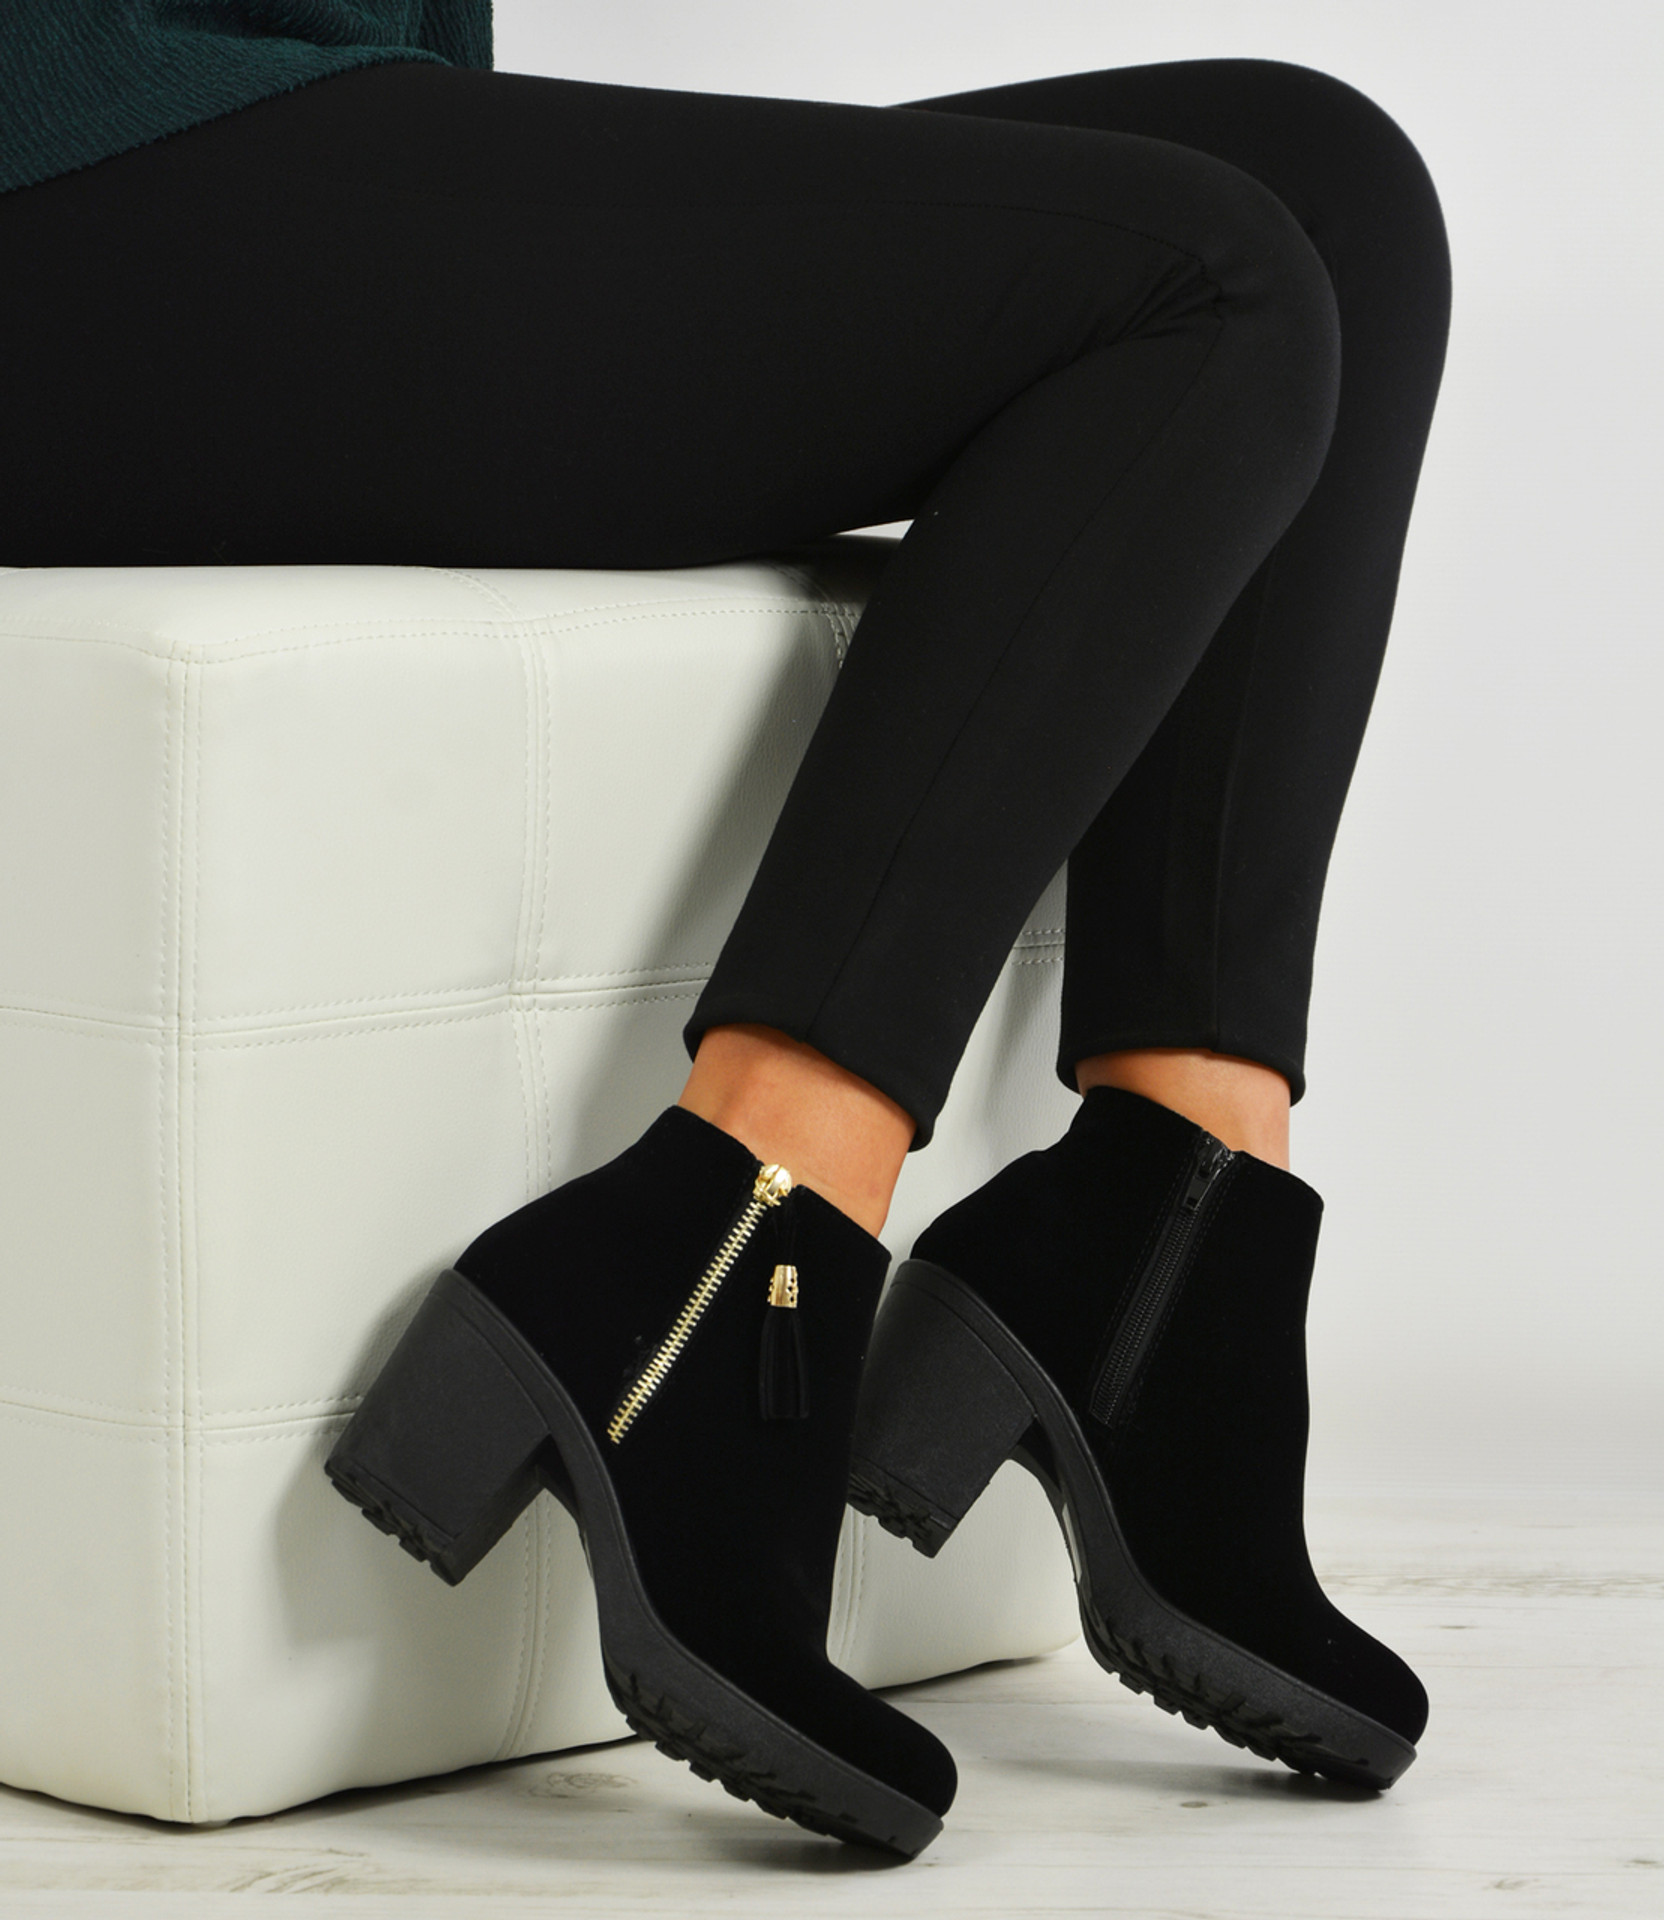 Irene Black Suede Side Zip Ankle Boots